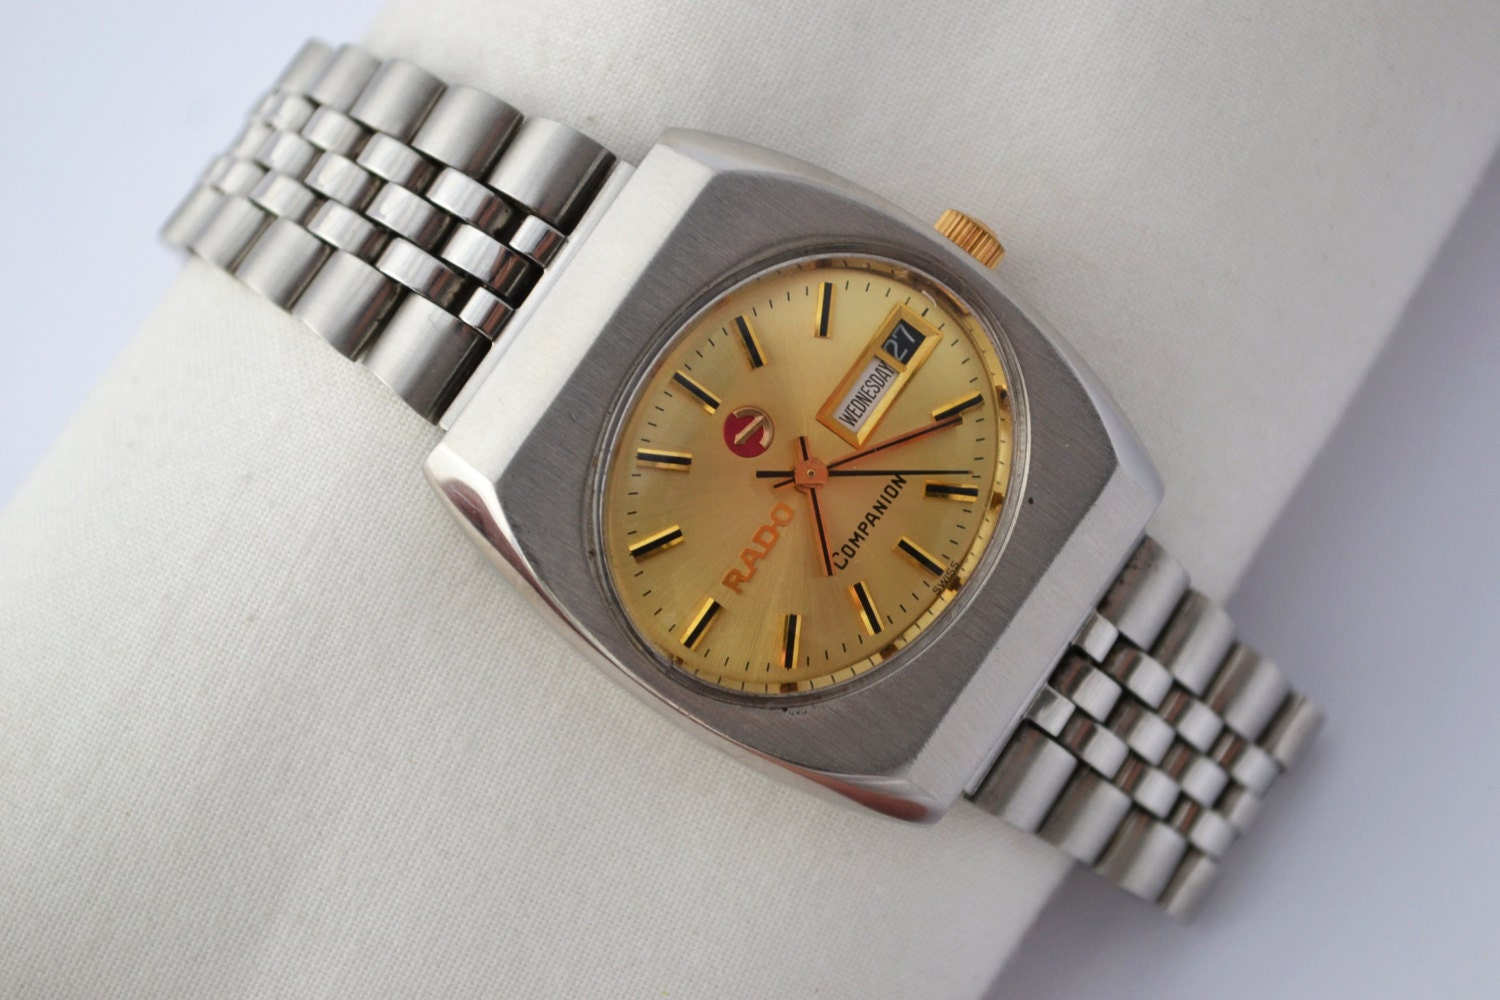 Vintage Rado Companion Stainless Steel Automatic Mens Watch 890   Make me an offer!